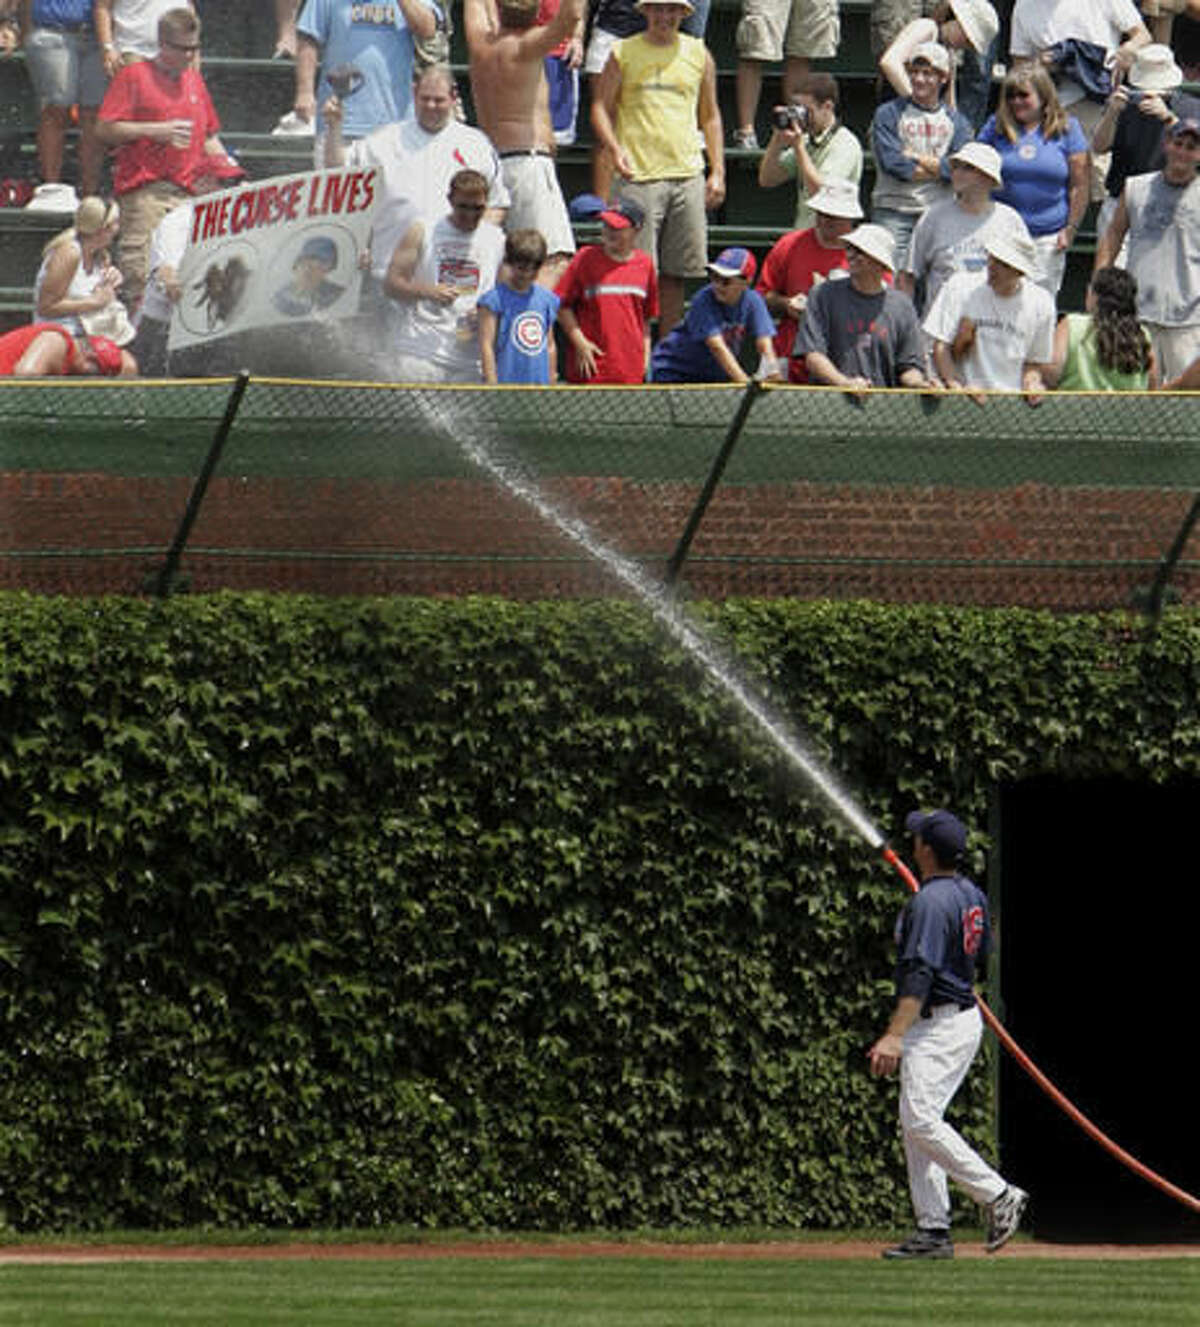 FILE - In this July 26, 2008 photo, Chicago Cubs pitcher Ryan Dempster hoses down a St. Louis Cardinals fan holding a